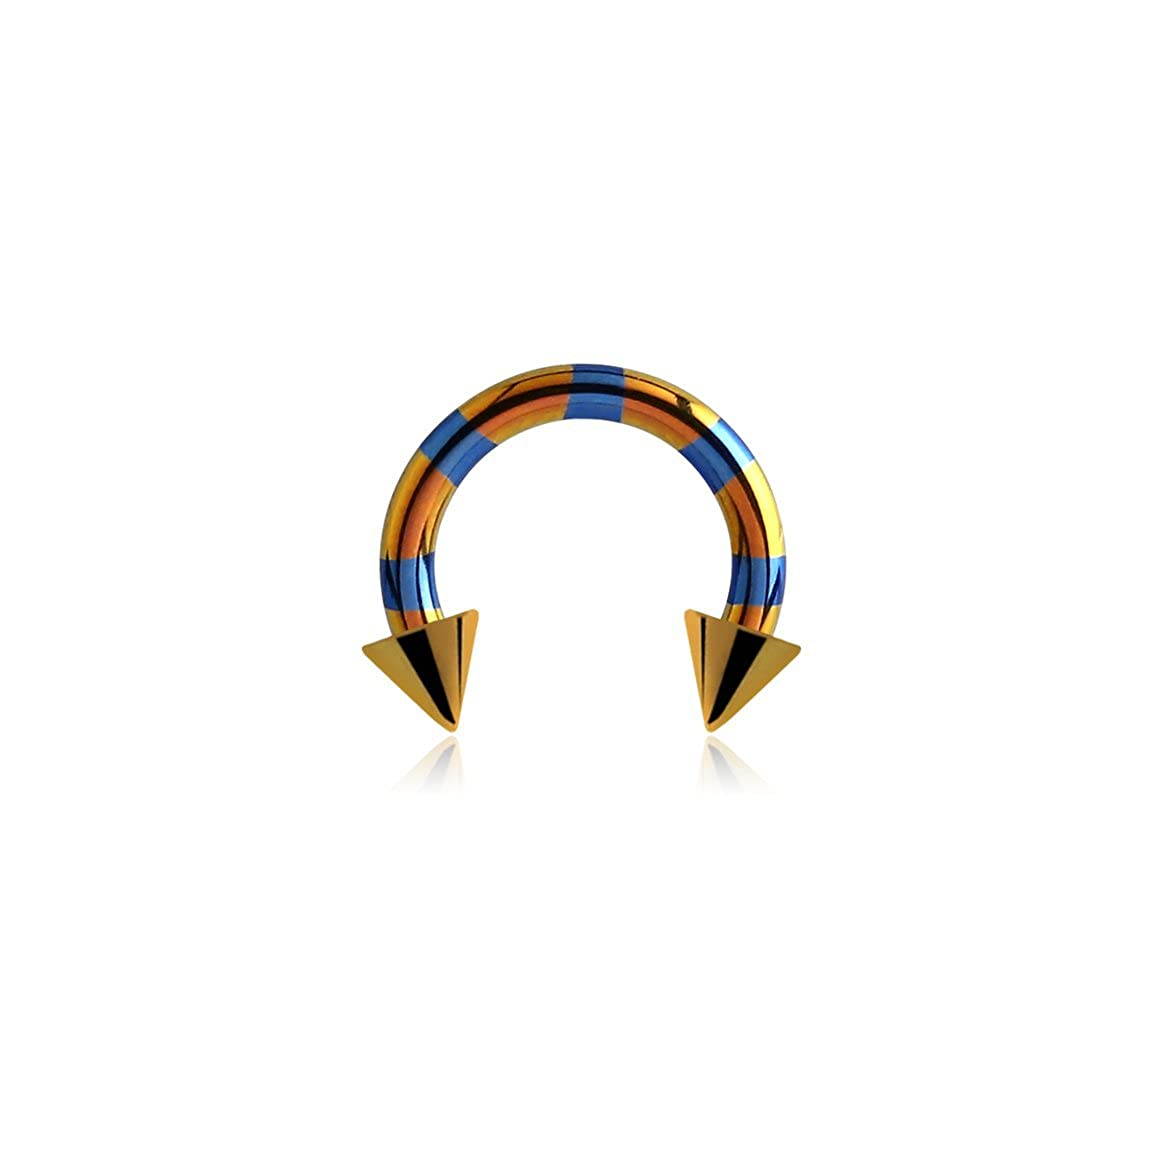 Bubble Body Jewelry Titanium Two Tone Circular Barbell With Cones 1.2mm Gauge 16g